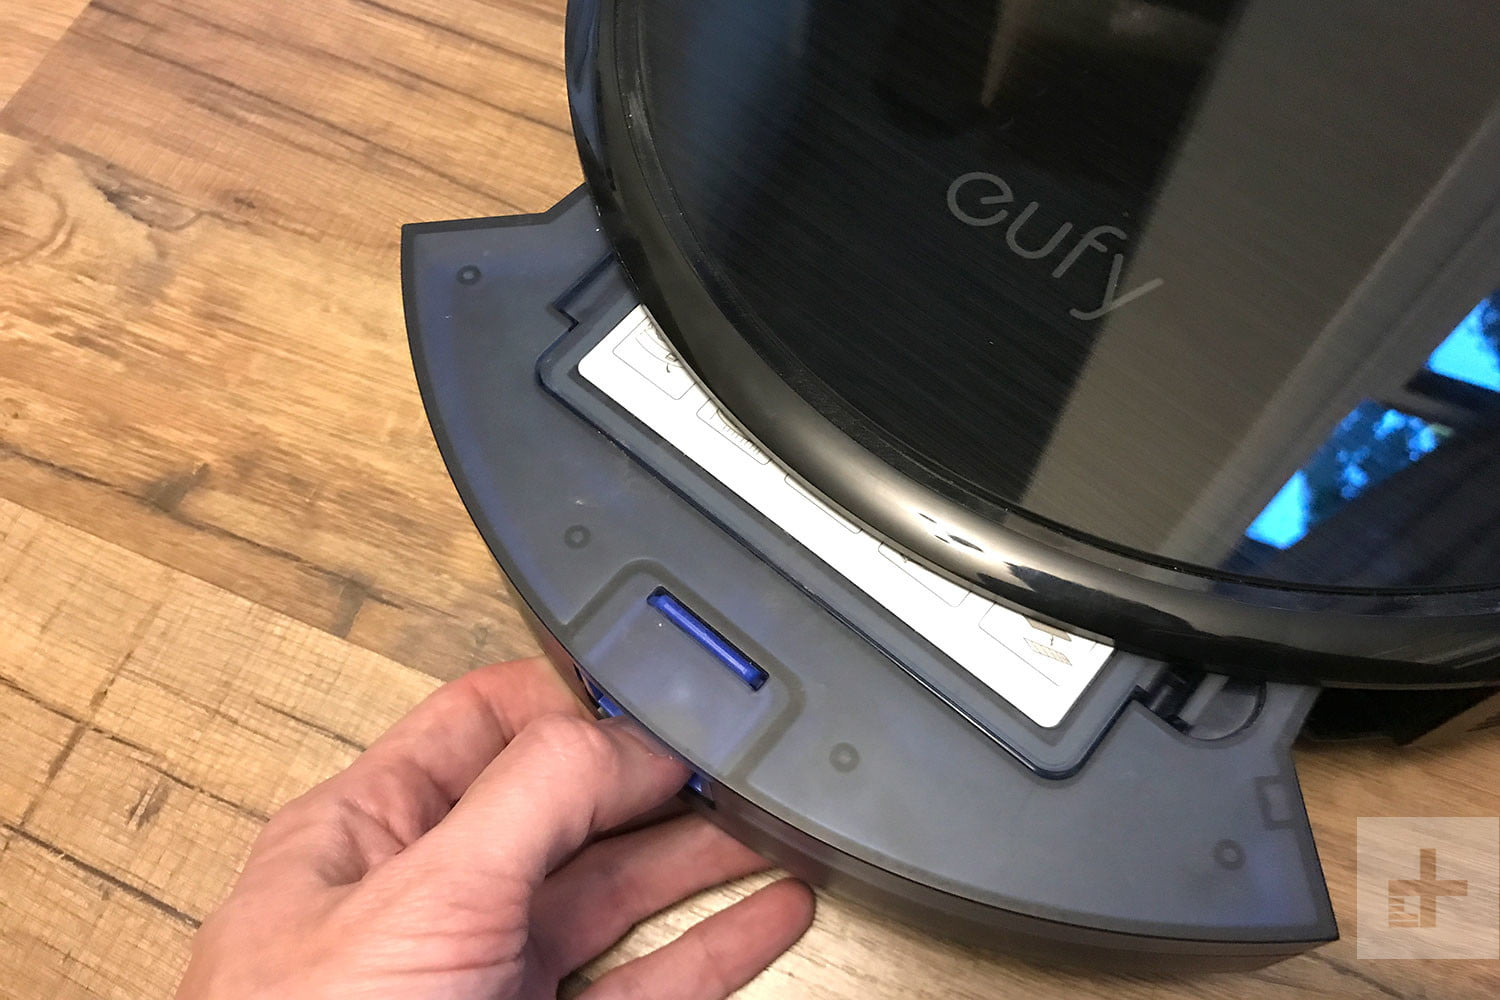 Eufy Robovac 11s Boostiq Review ⋆ New York City Blog